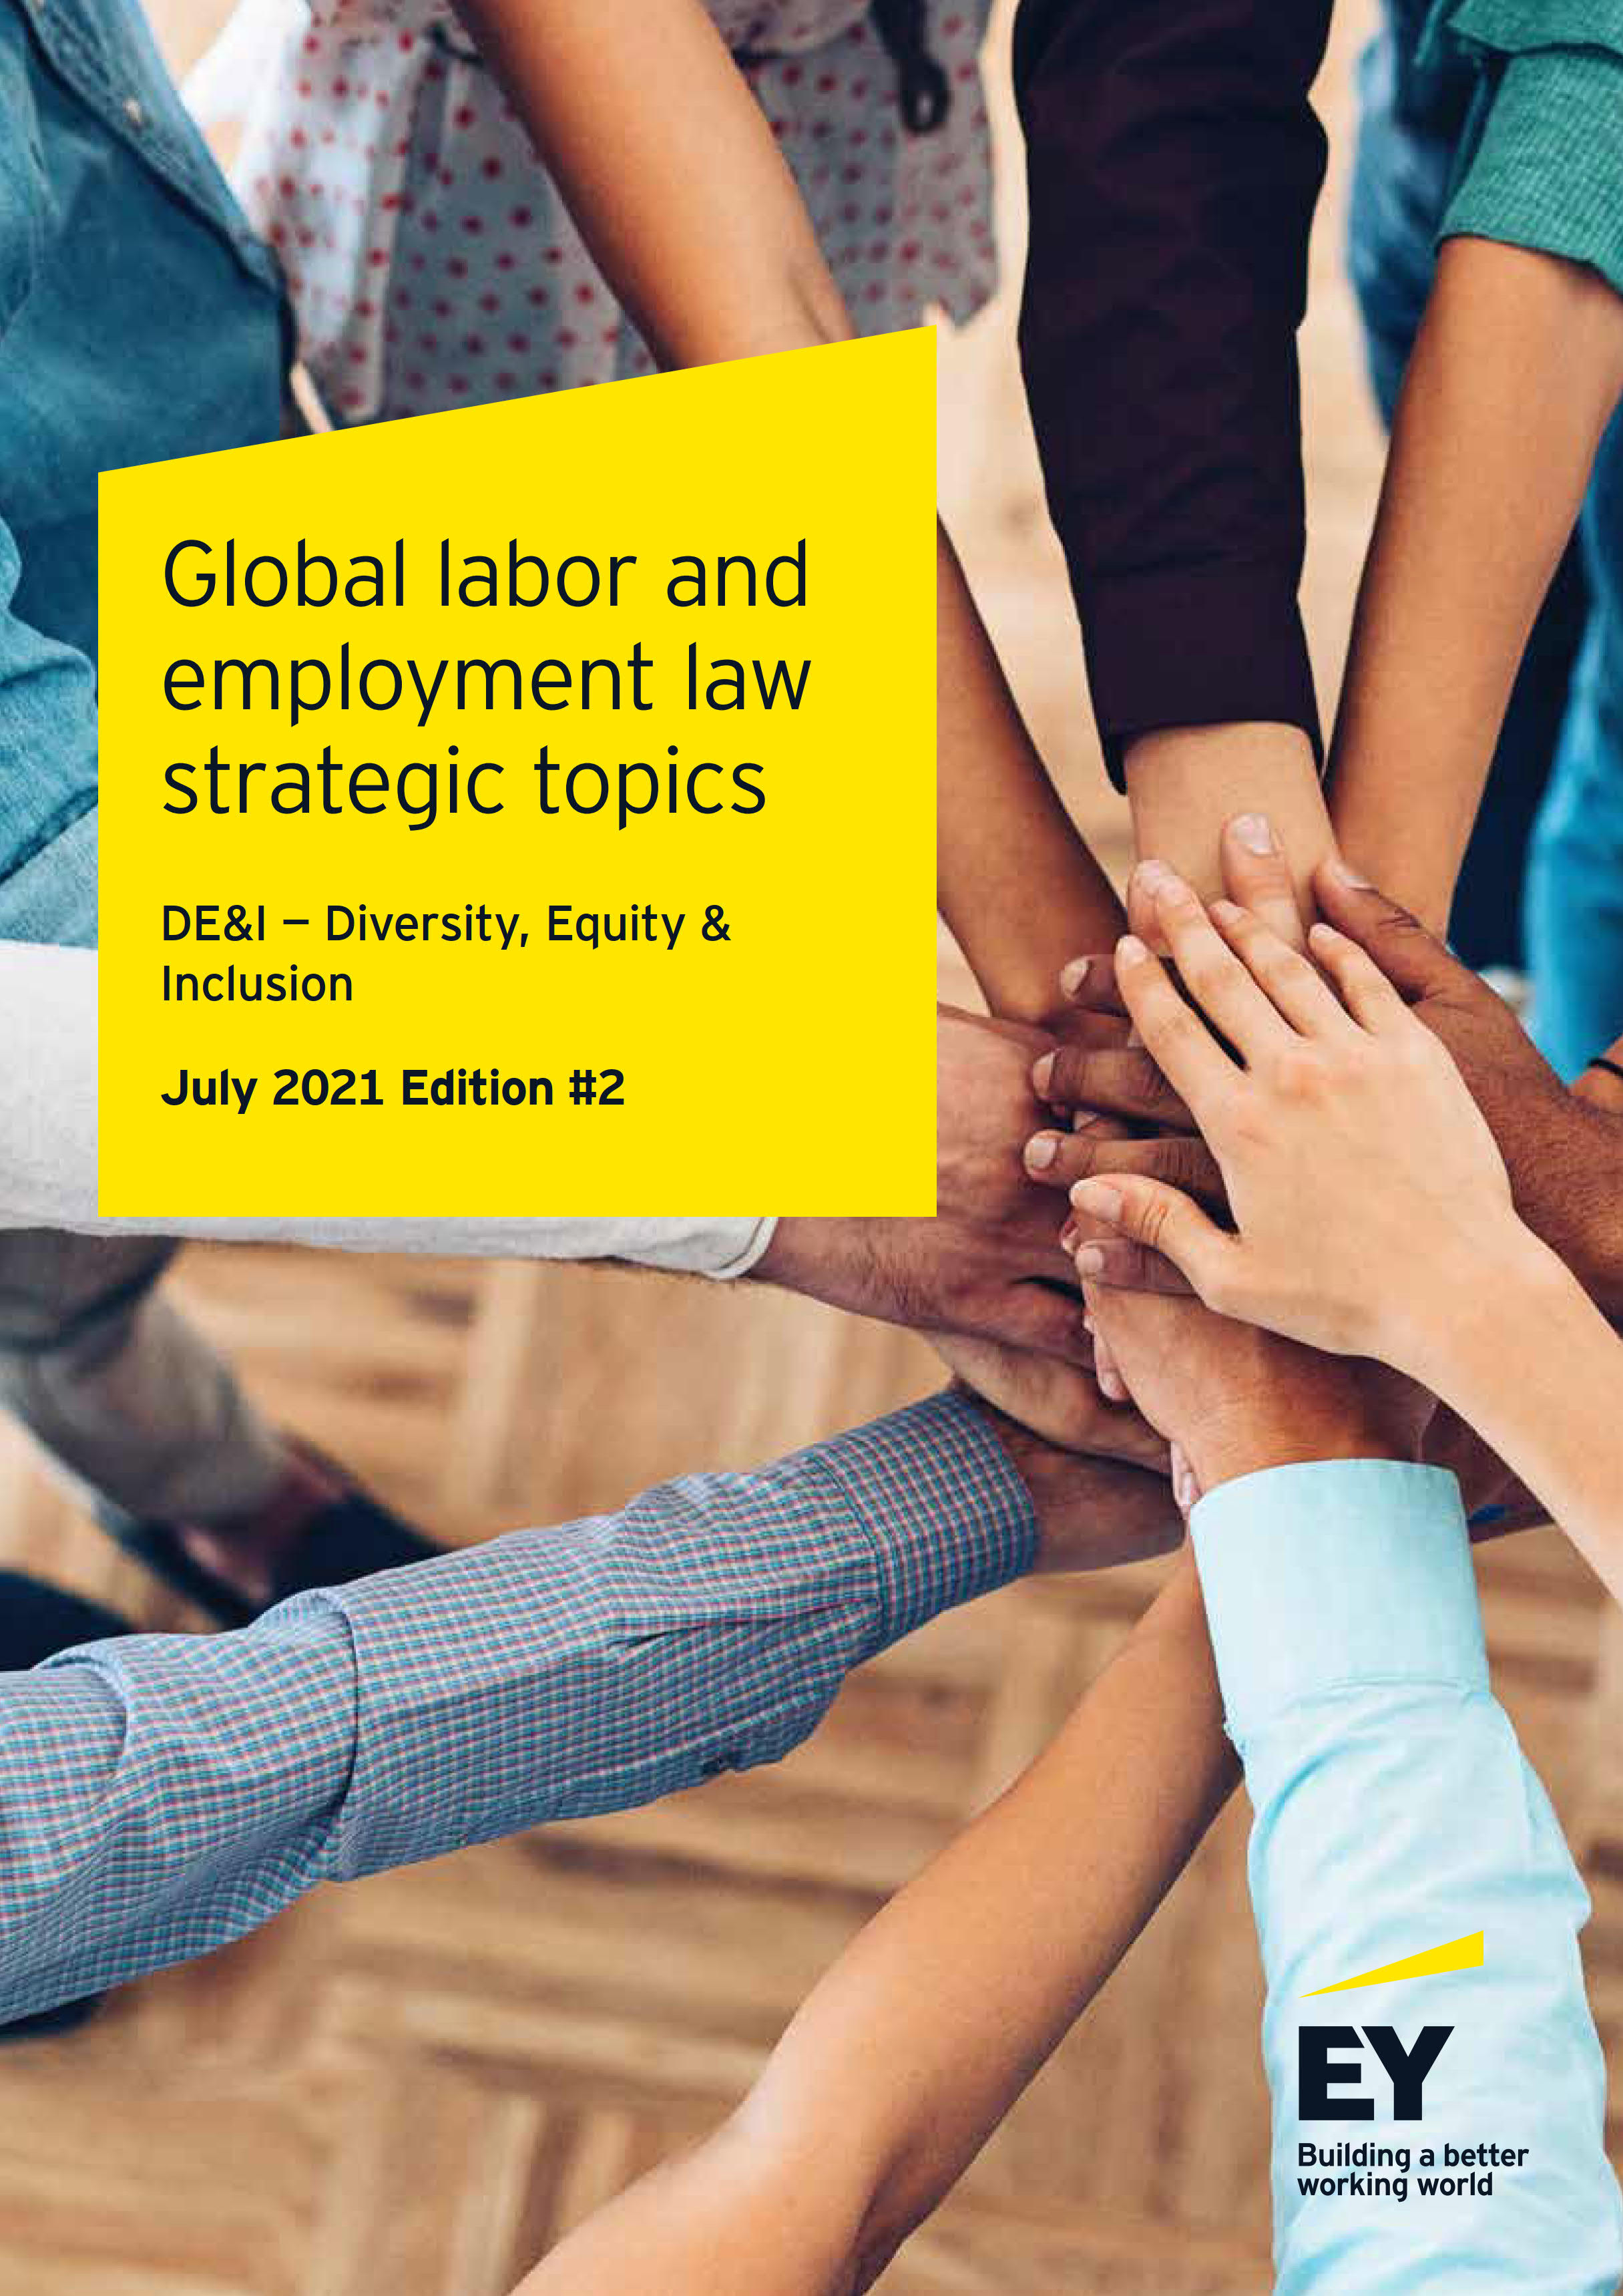 Global labor and employment law strategic topics: DE&I — Diversity, Equity & Inclusion, July 2021